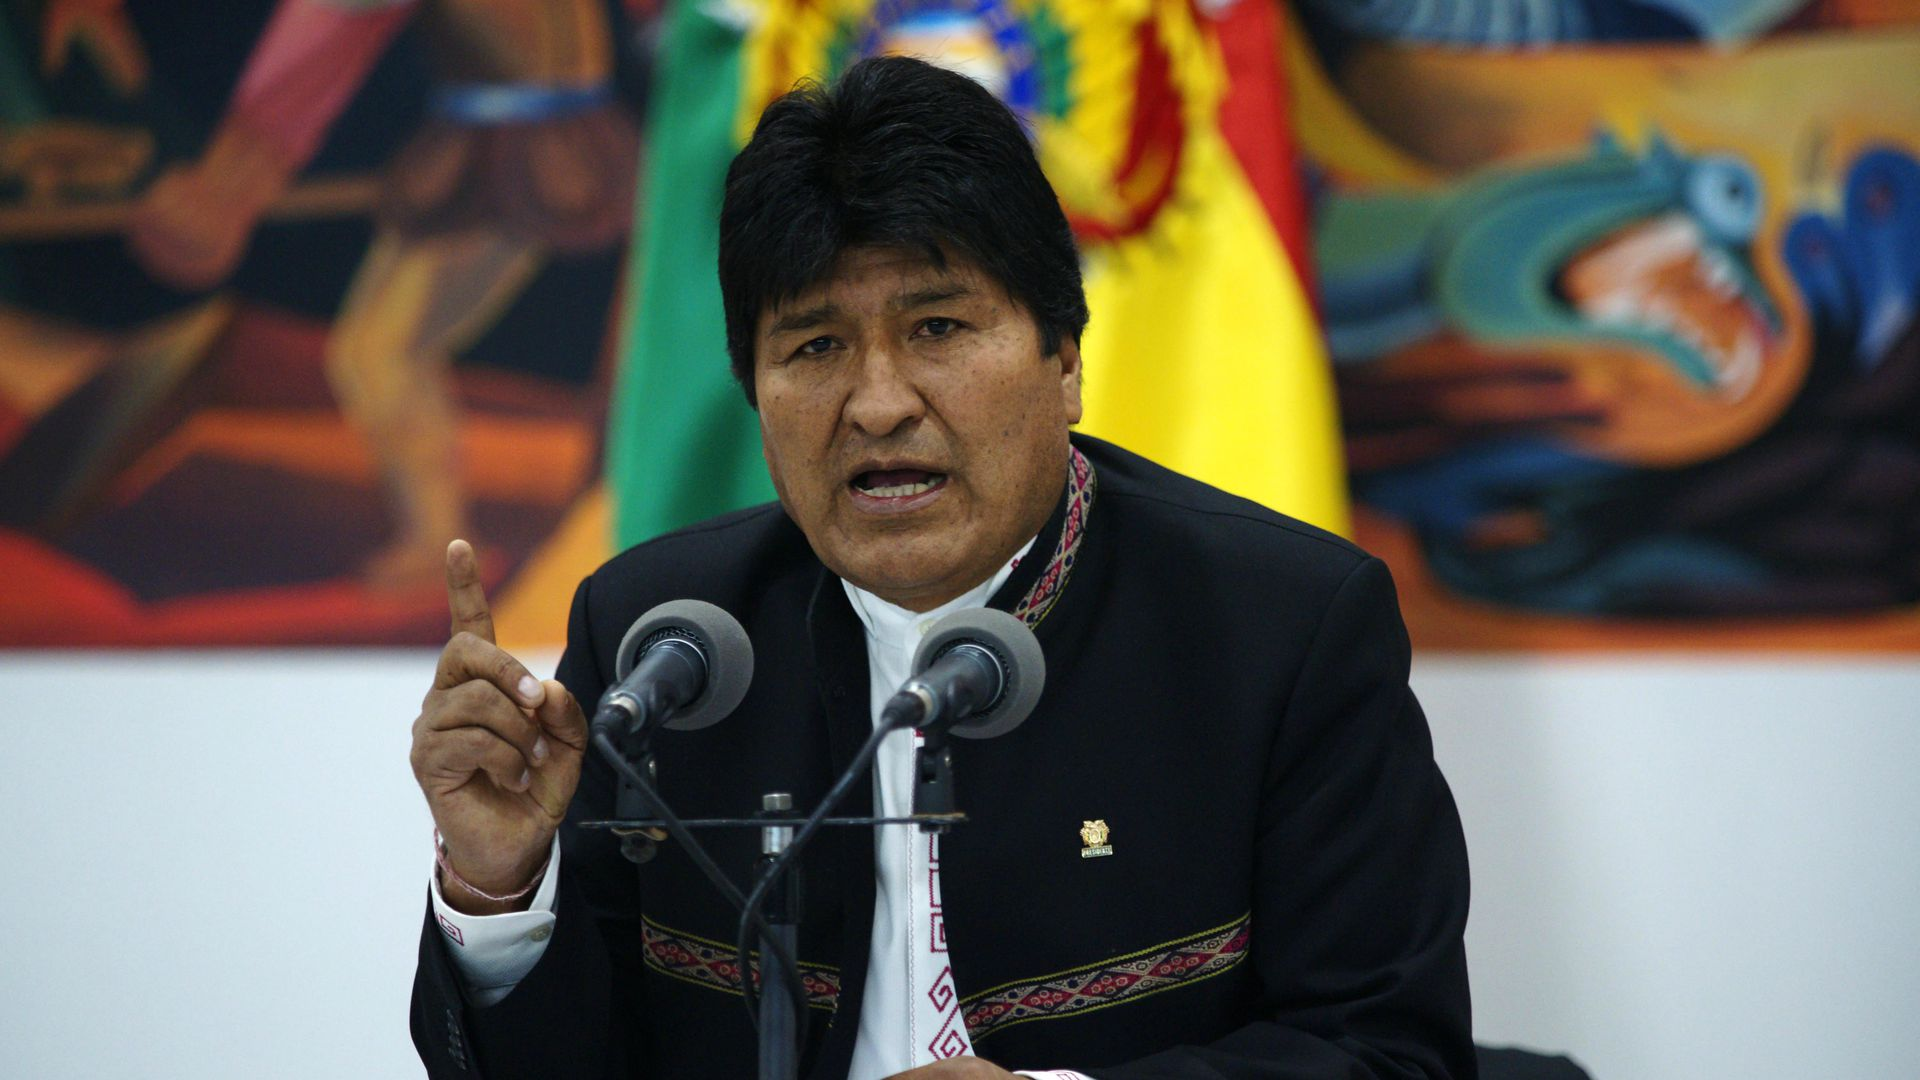 Bolivian President Evo Morales announces resignation amid mass protests